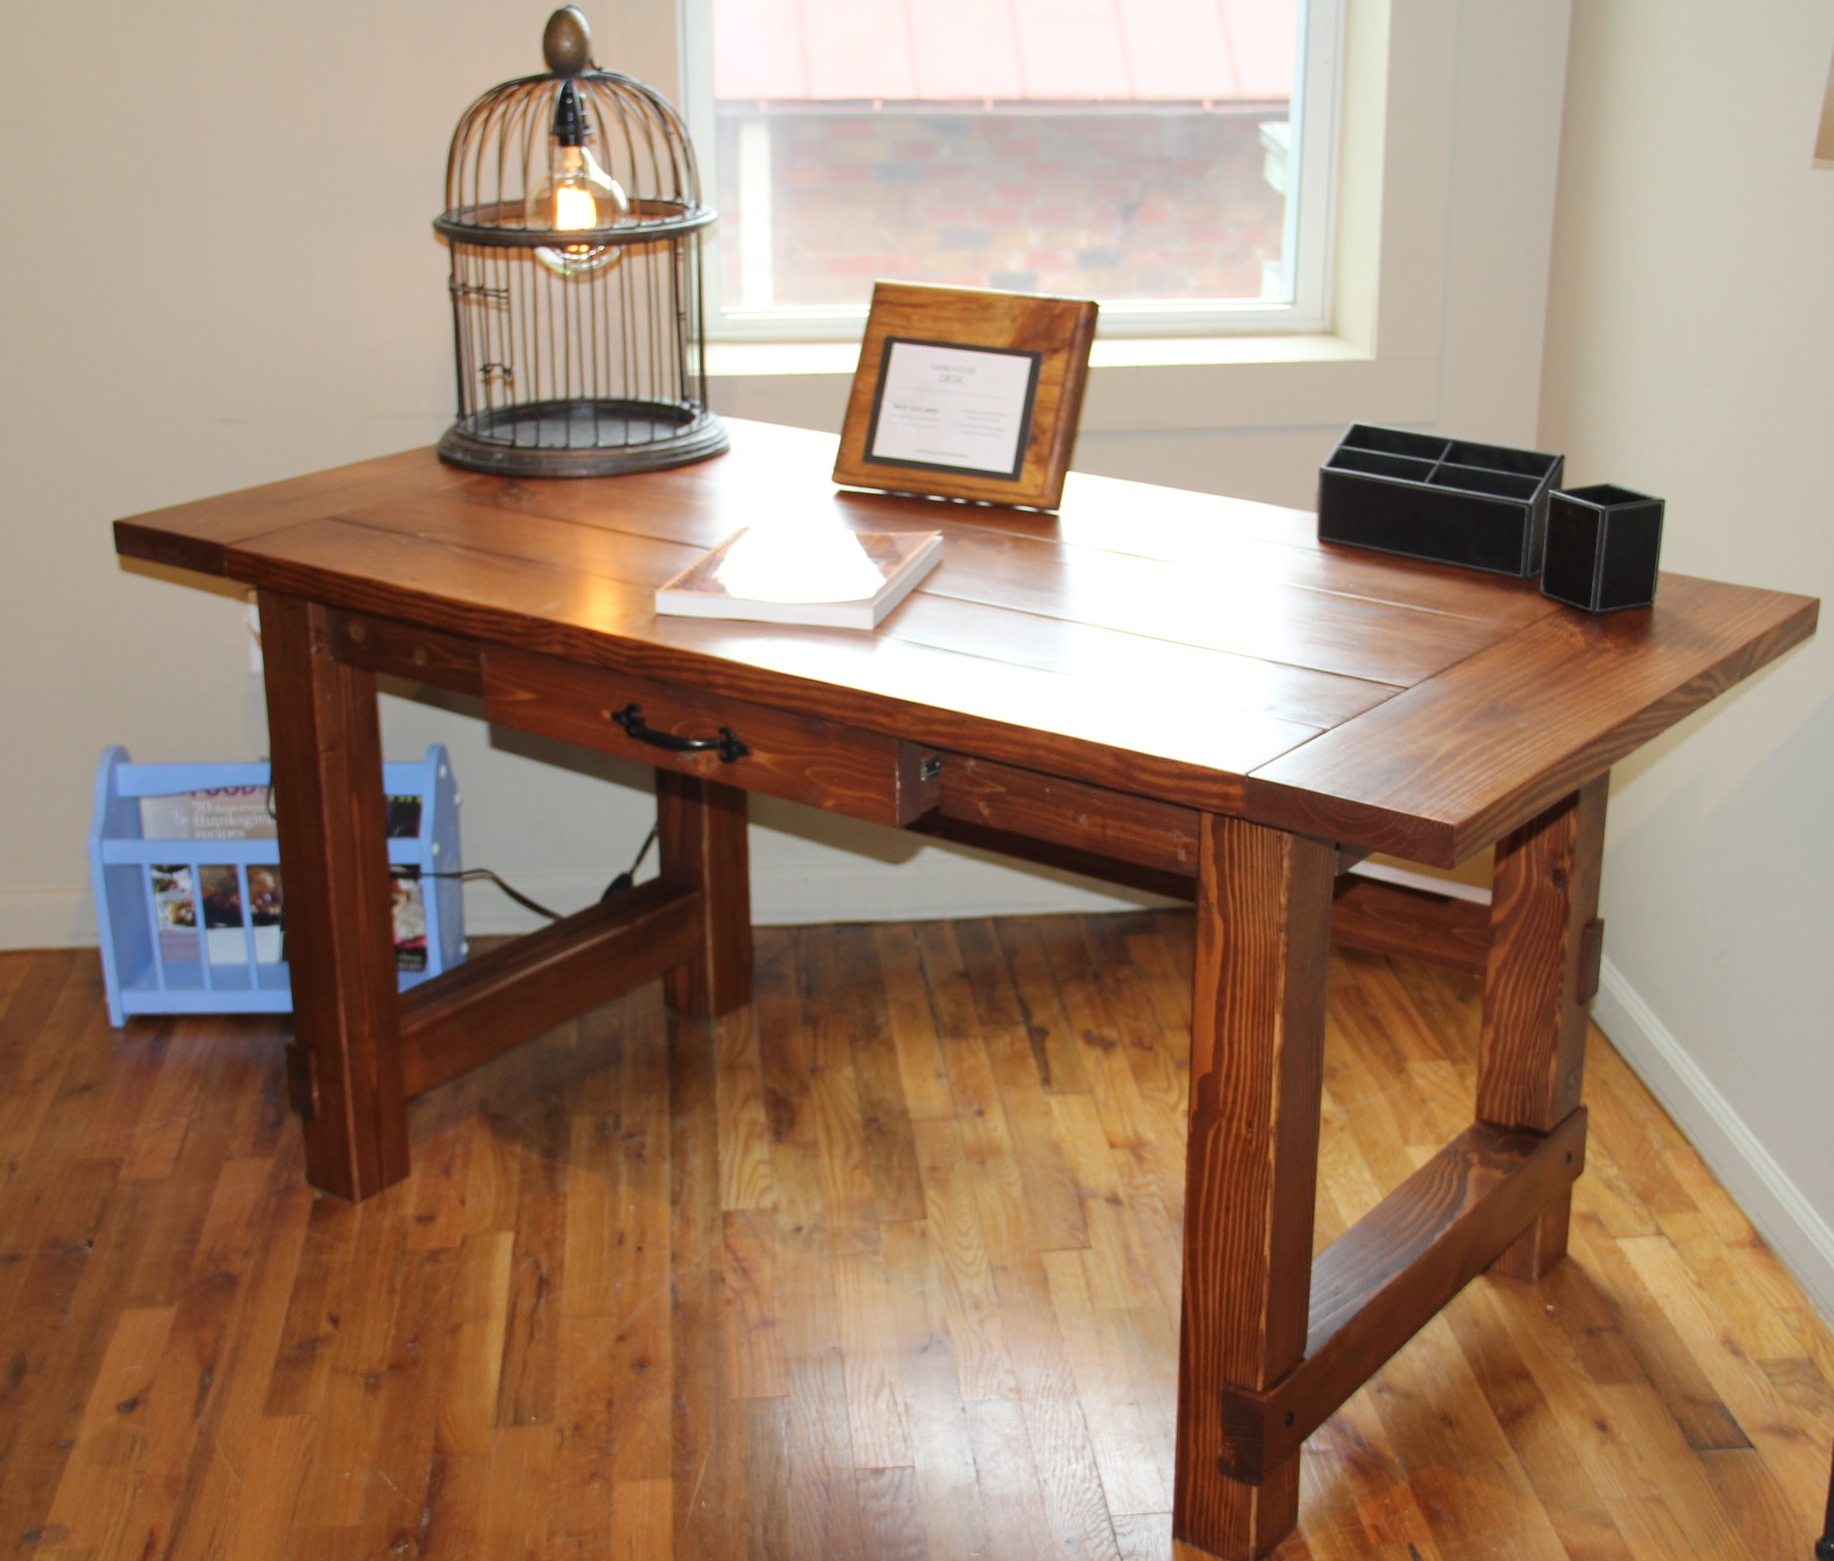 Farmhouse Desk in Pine with English Chestnut Finish